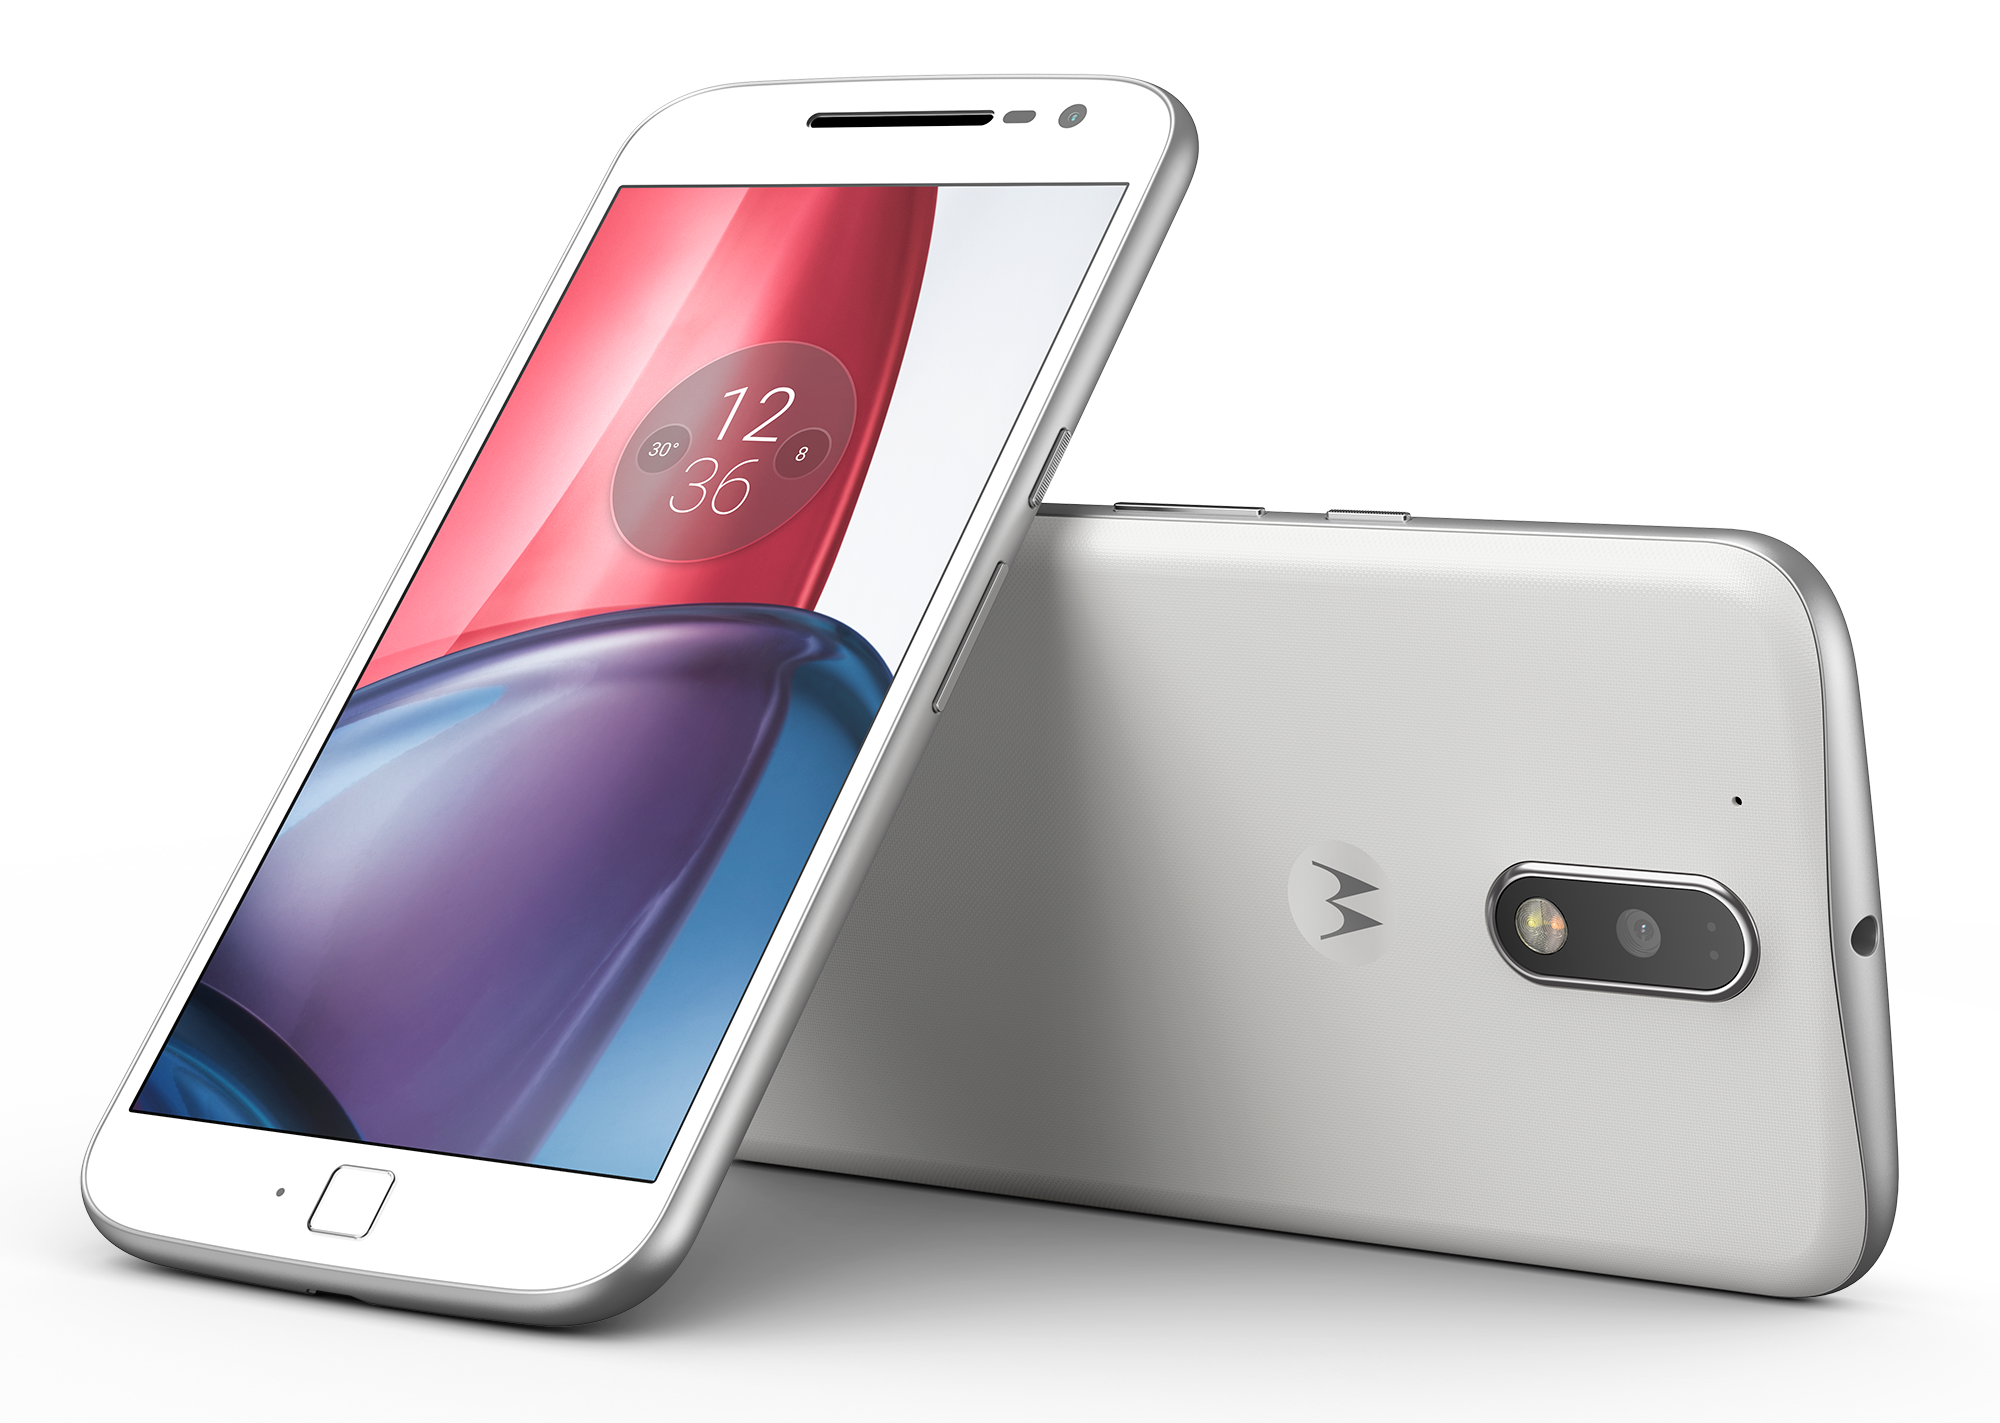 Win A Moto G4 Plus - International Giveaway